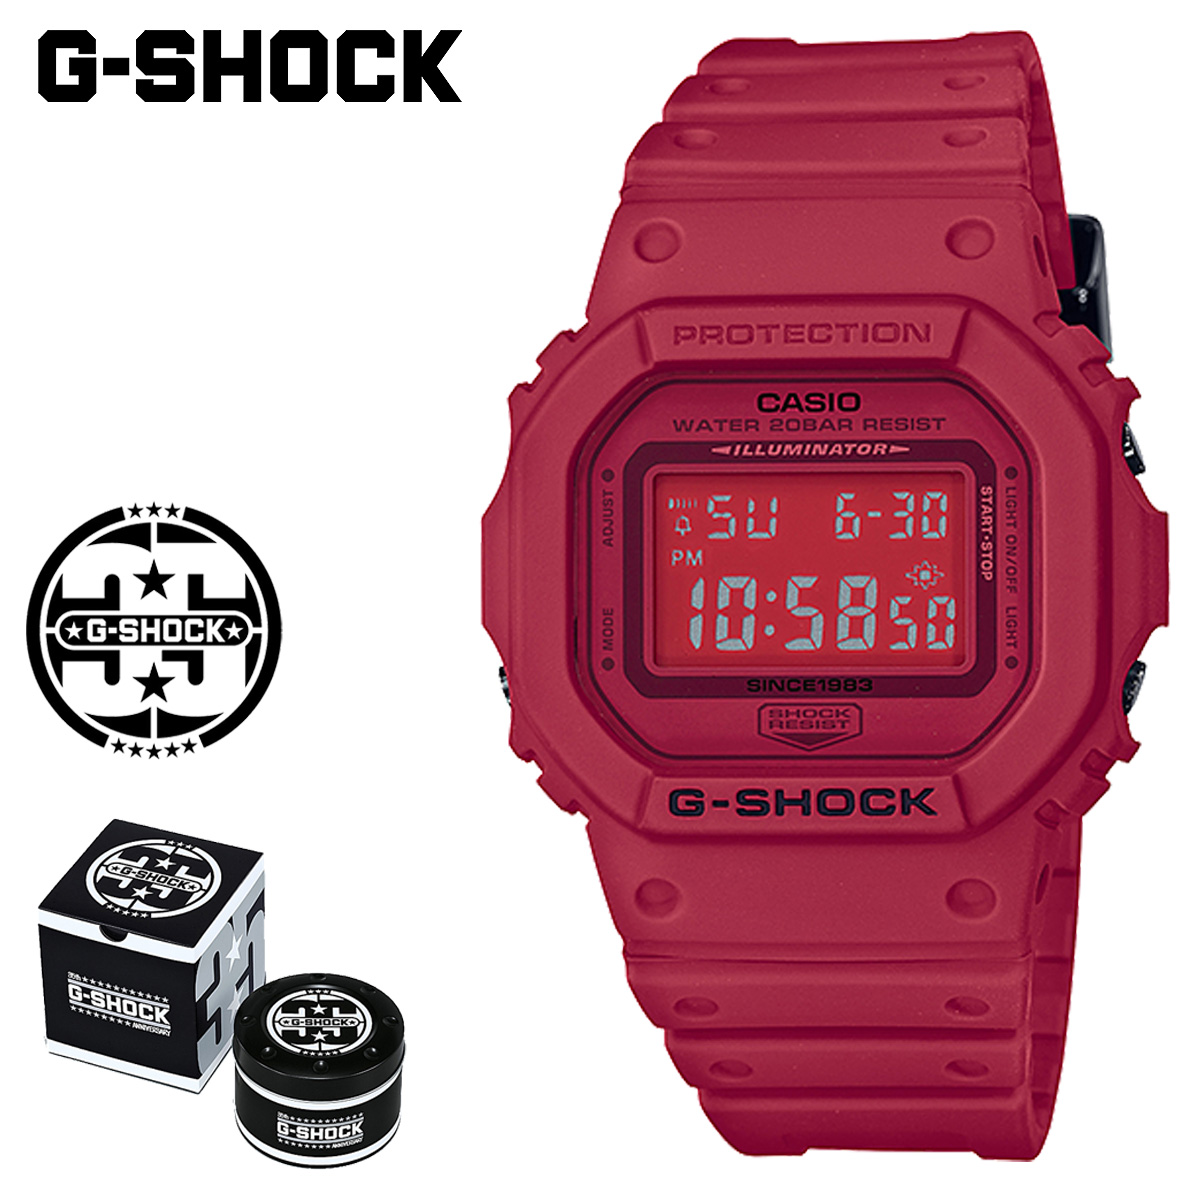 Dw Shop G Shock G Shock G Shock Red Men Gap Dis 1 19 Shinnyu Load Of The 35th Anniversary Of Casio Casio G Shock Watch Dw 5635c 4jr Red Out